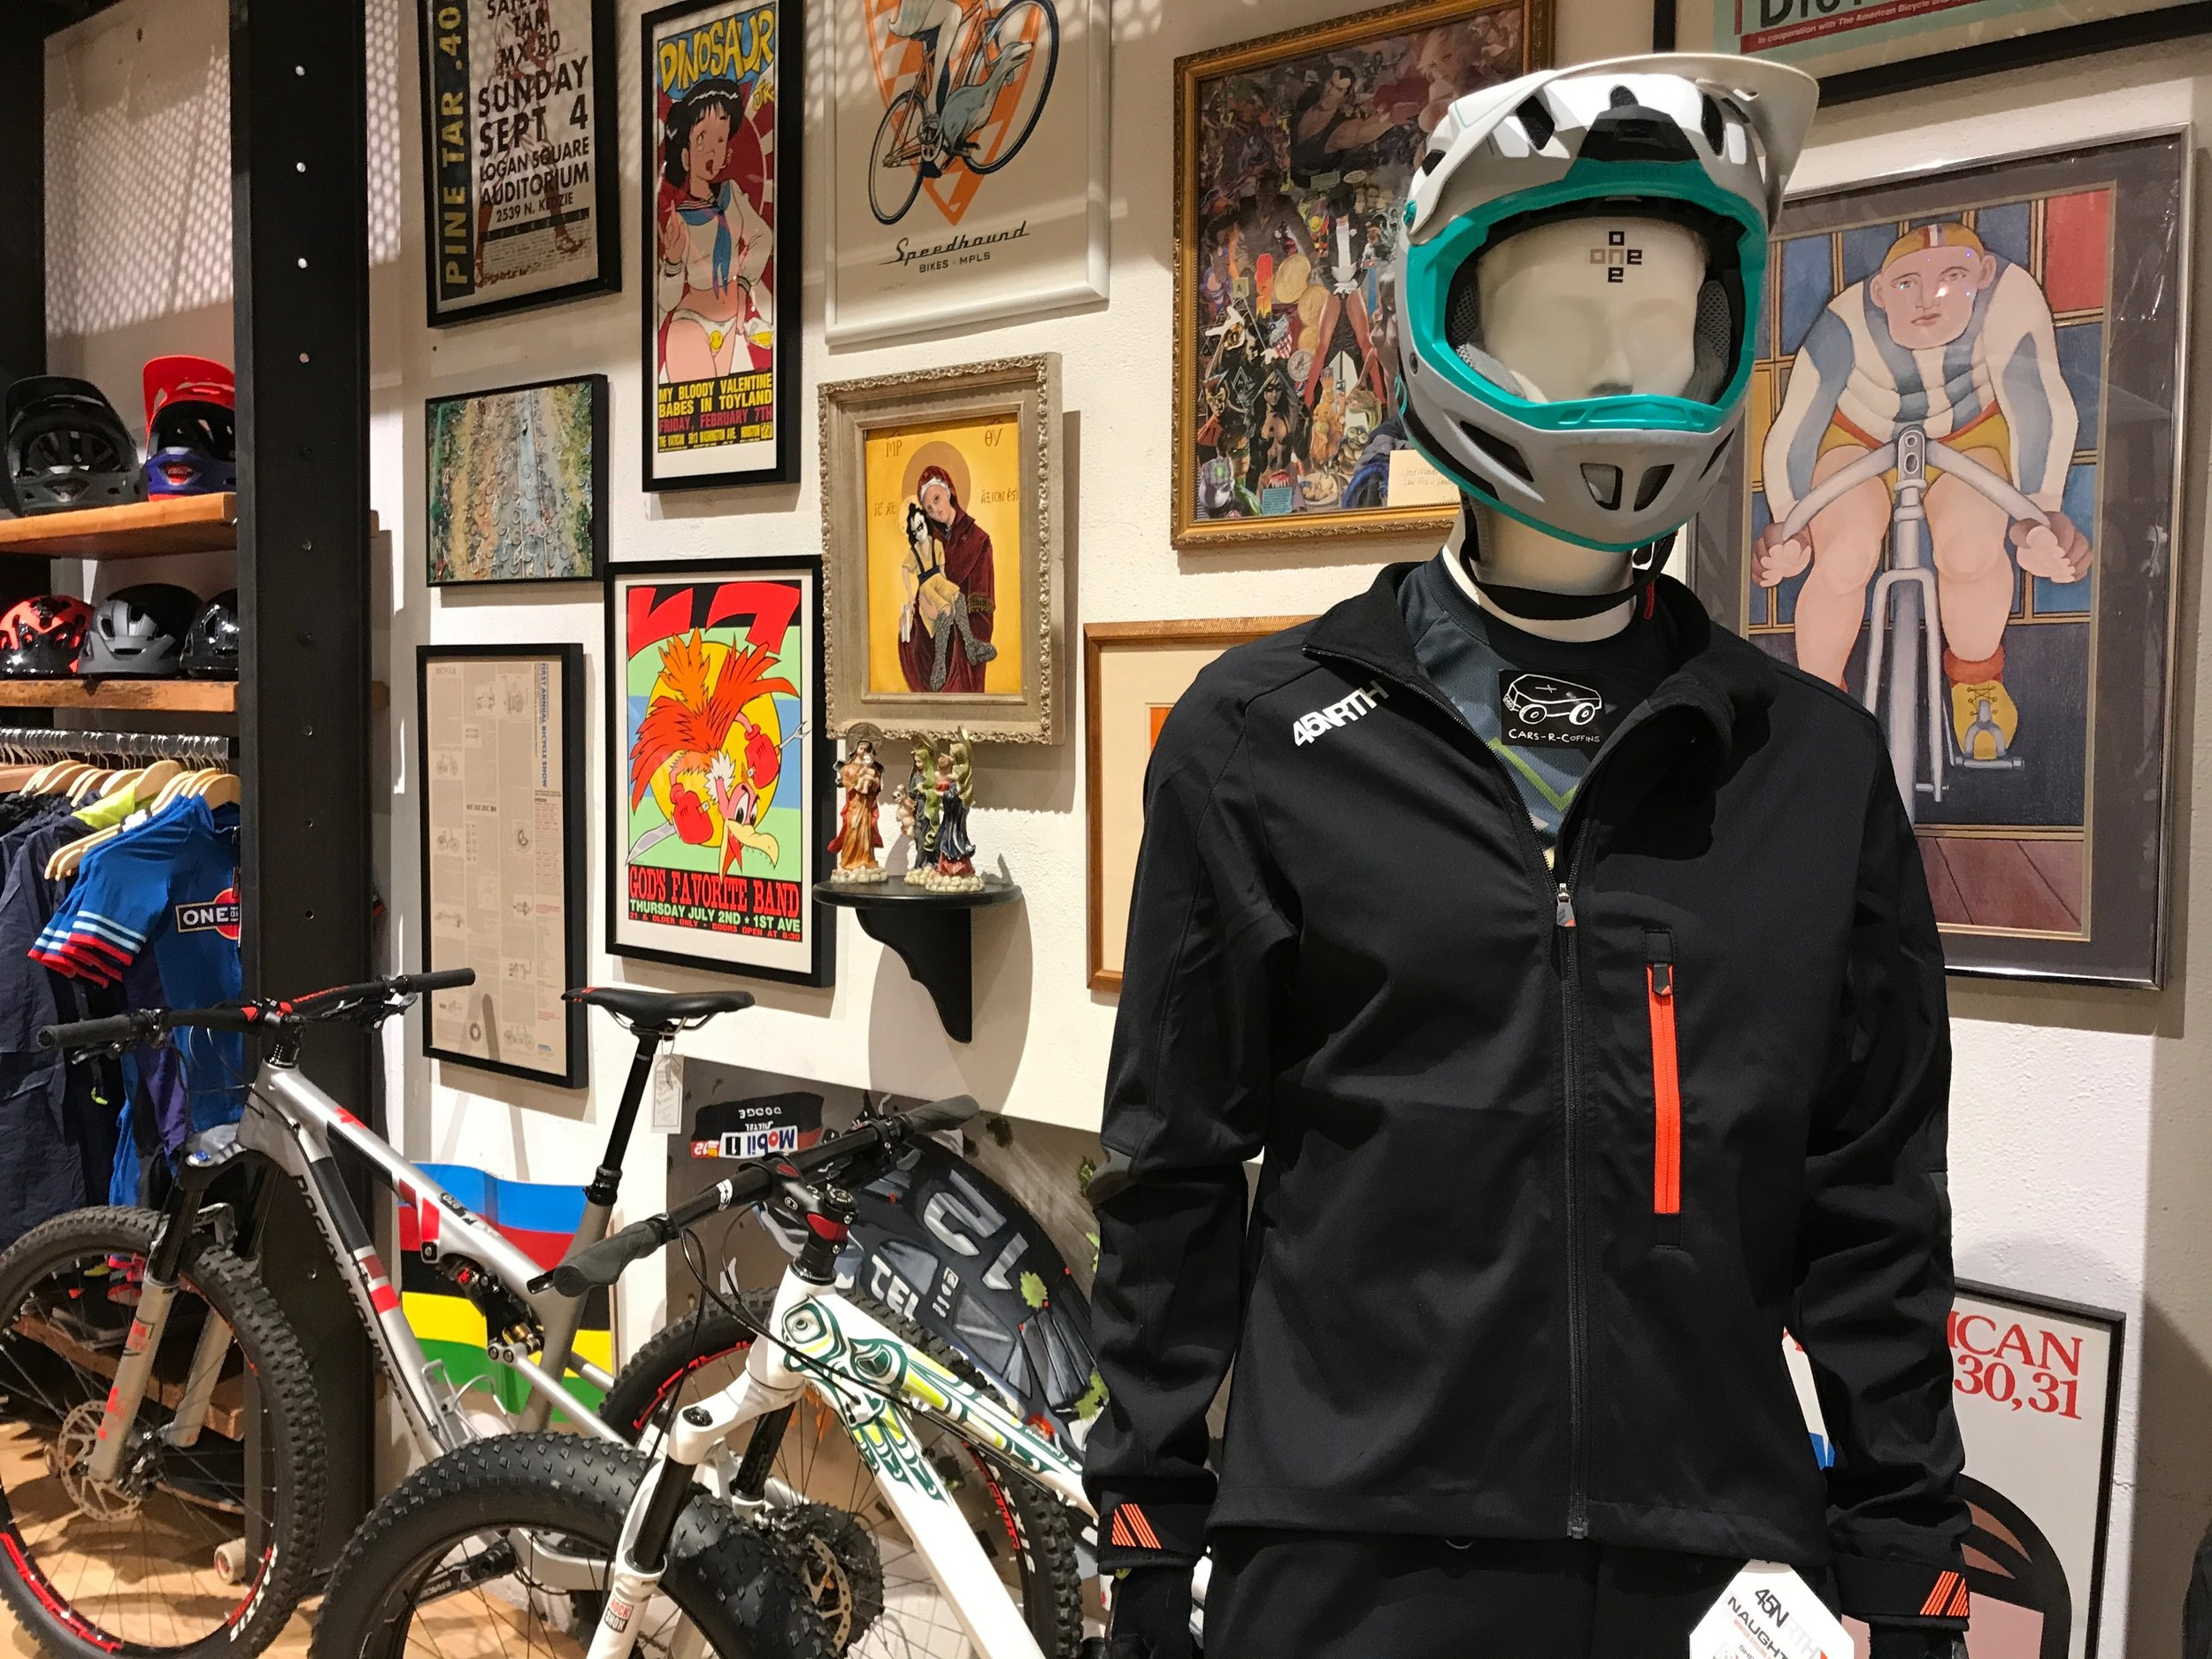 One on One Bicycle Studio in the North Loop neighborhood of Minneapolis offers killer gear, local art, and a damn good cup of joe.